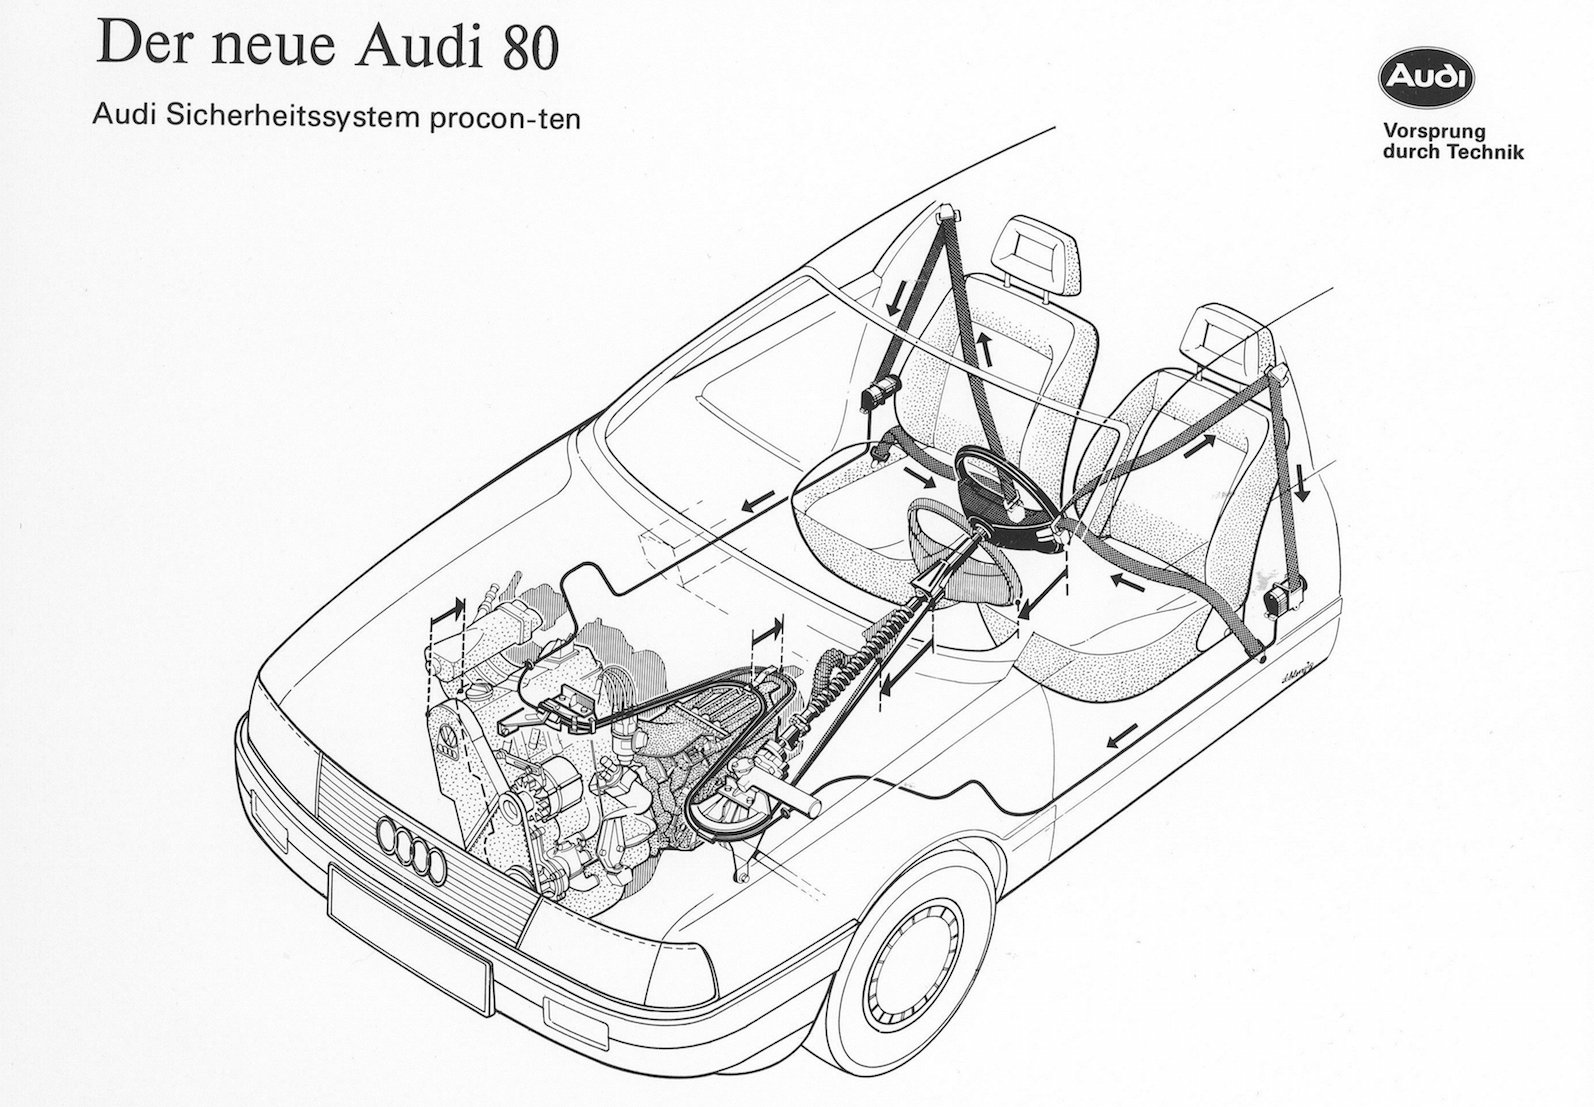 Patented Audi Safety-system Procon-ten from 1986: In a frontal collision, the steering wheel was pulled back and the front seatbelts tensioned by means of the displacement of the engine toward the passenger compartment.